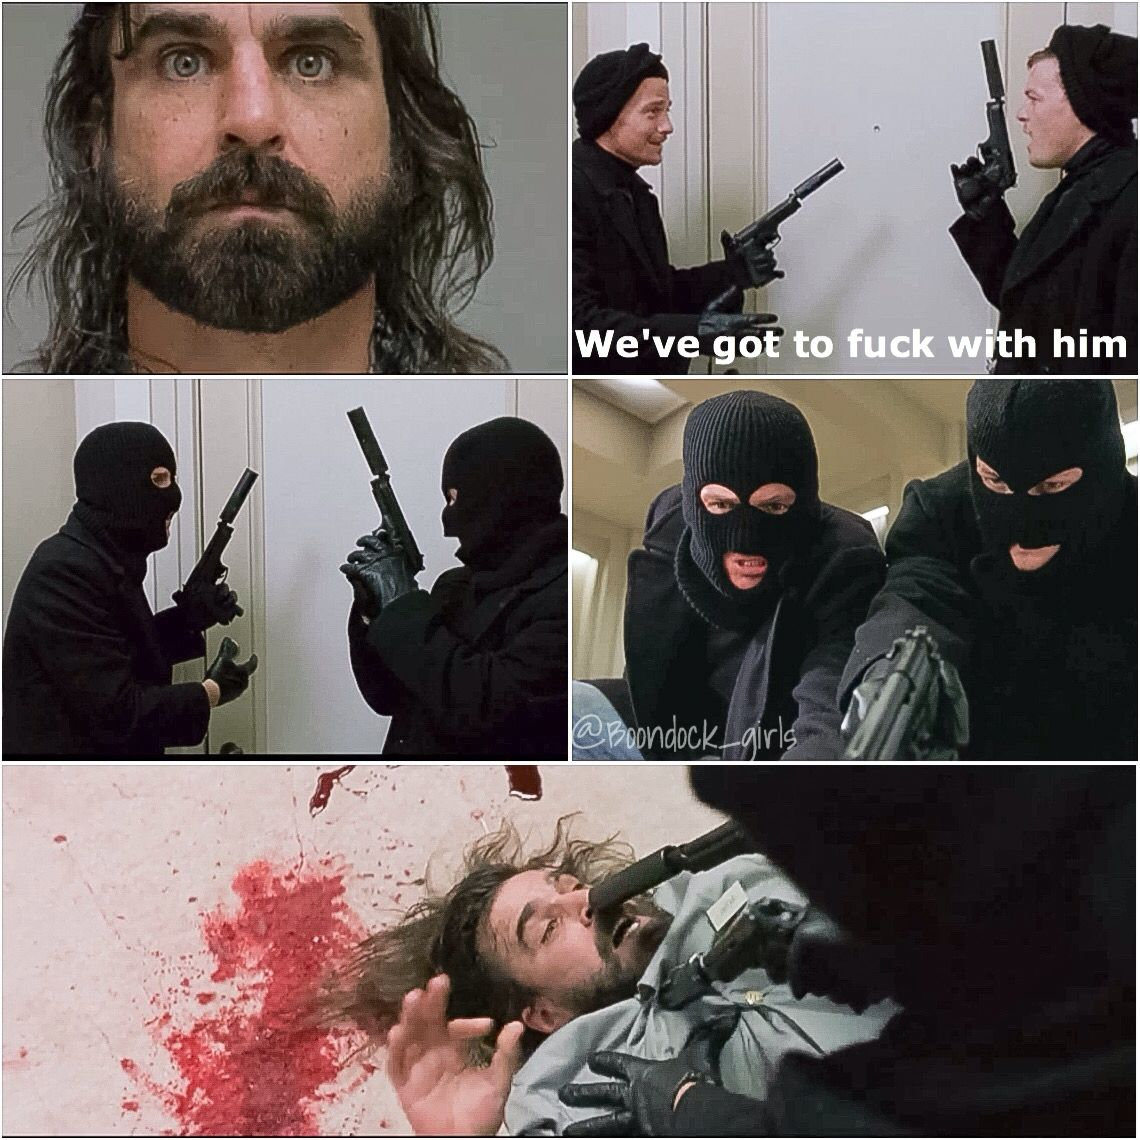 We've got to fuck with him Boondock saints